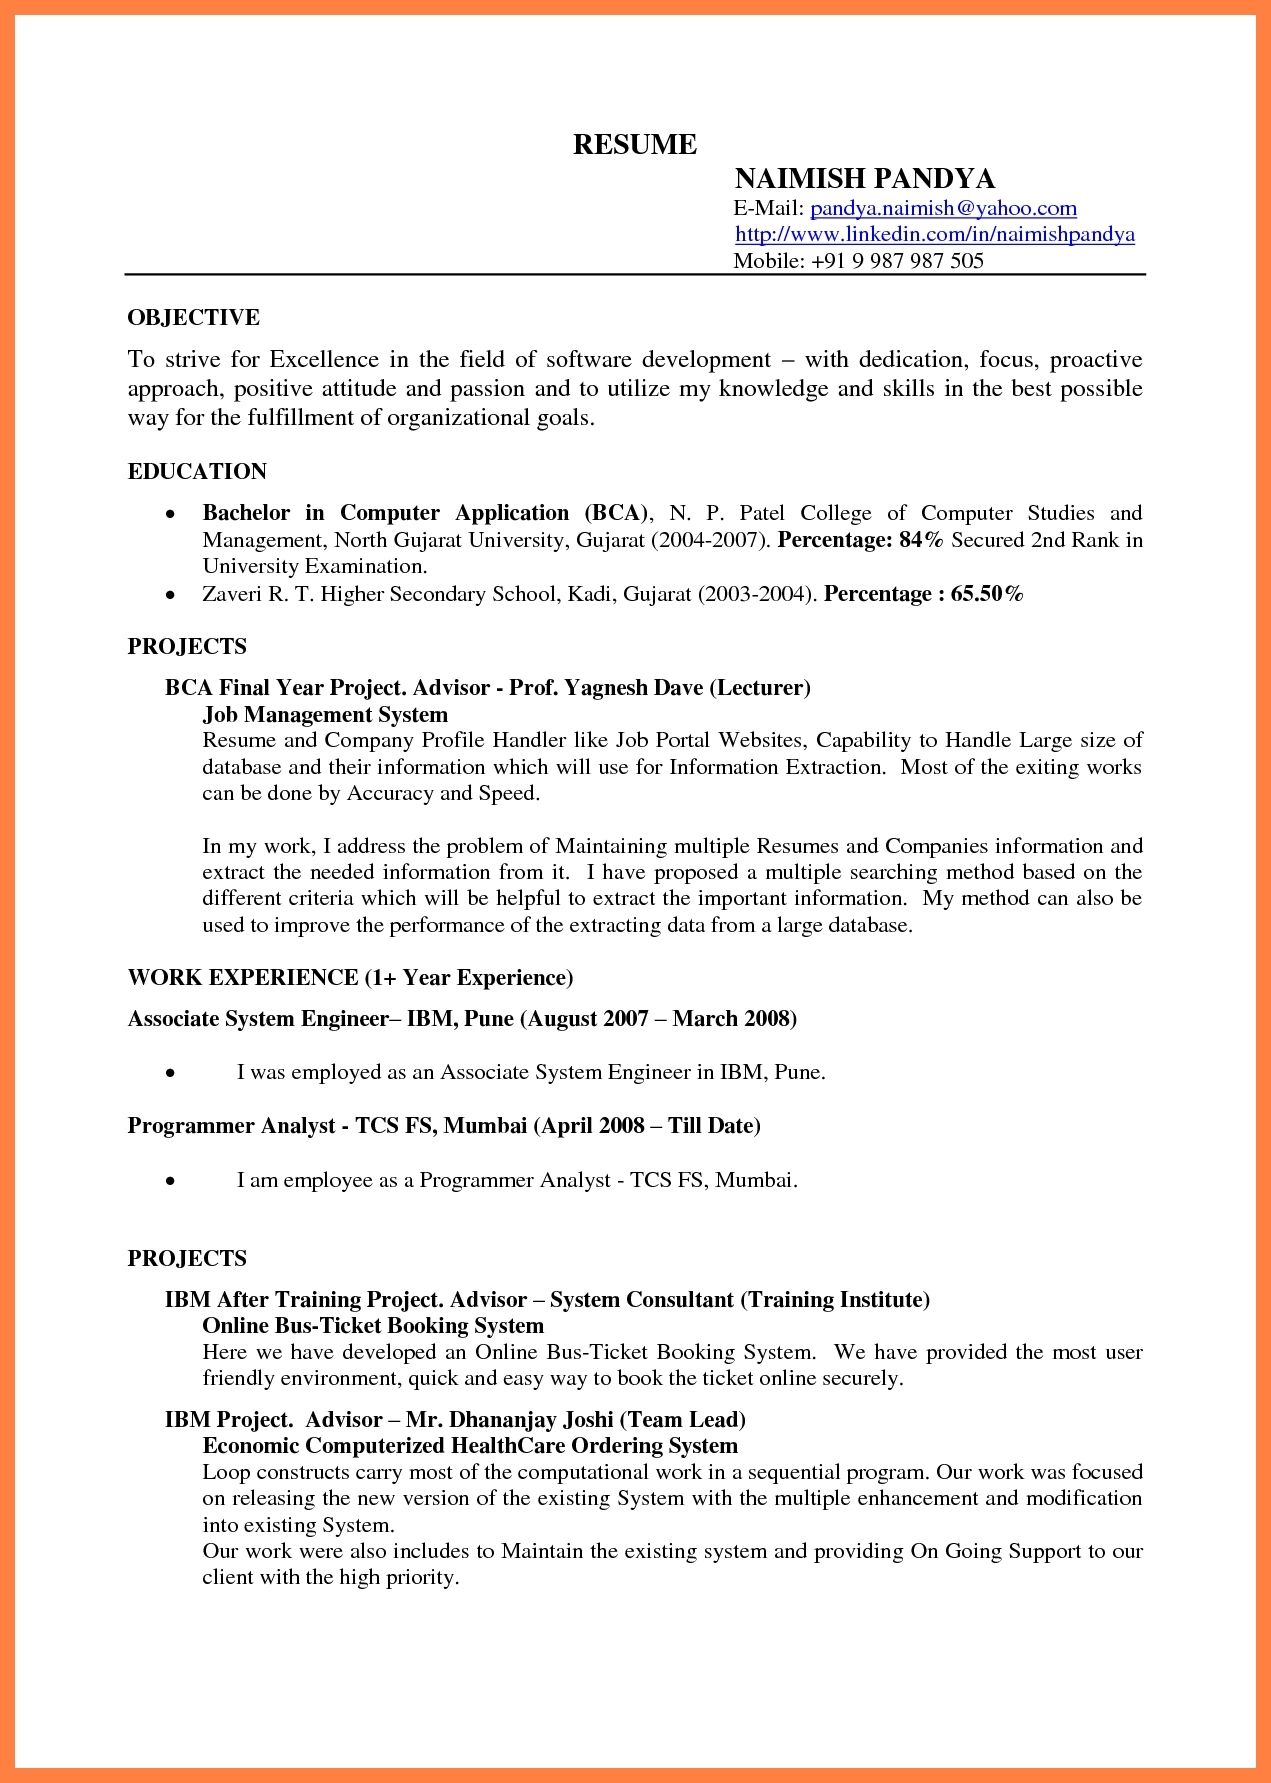 resume companies adorable 7 best job stuff images on